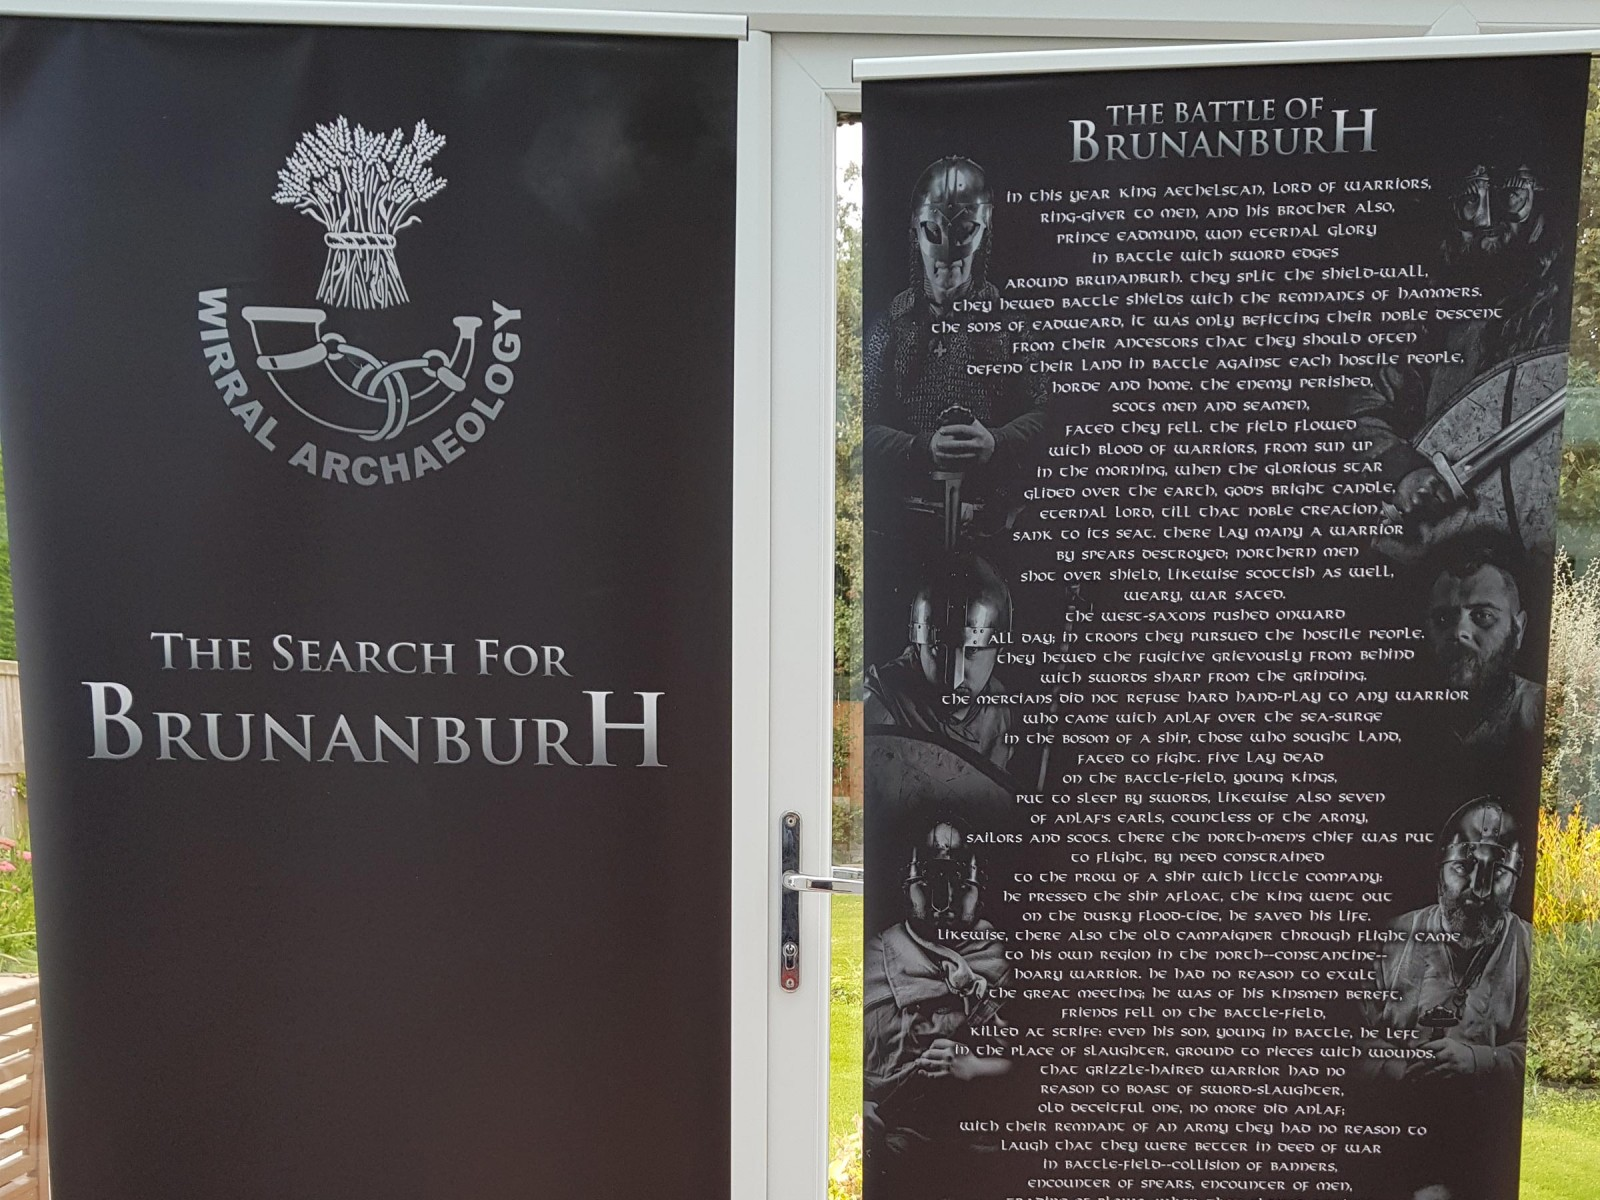 Wirral Archaeology banner relating  the 'battle of Brunanburh' poem.